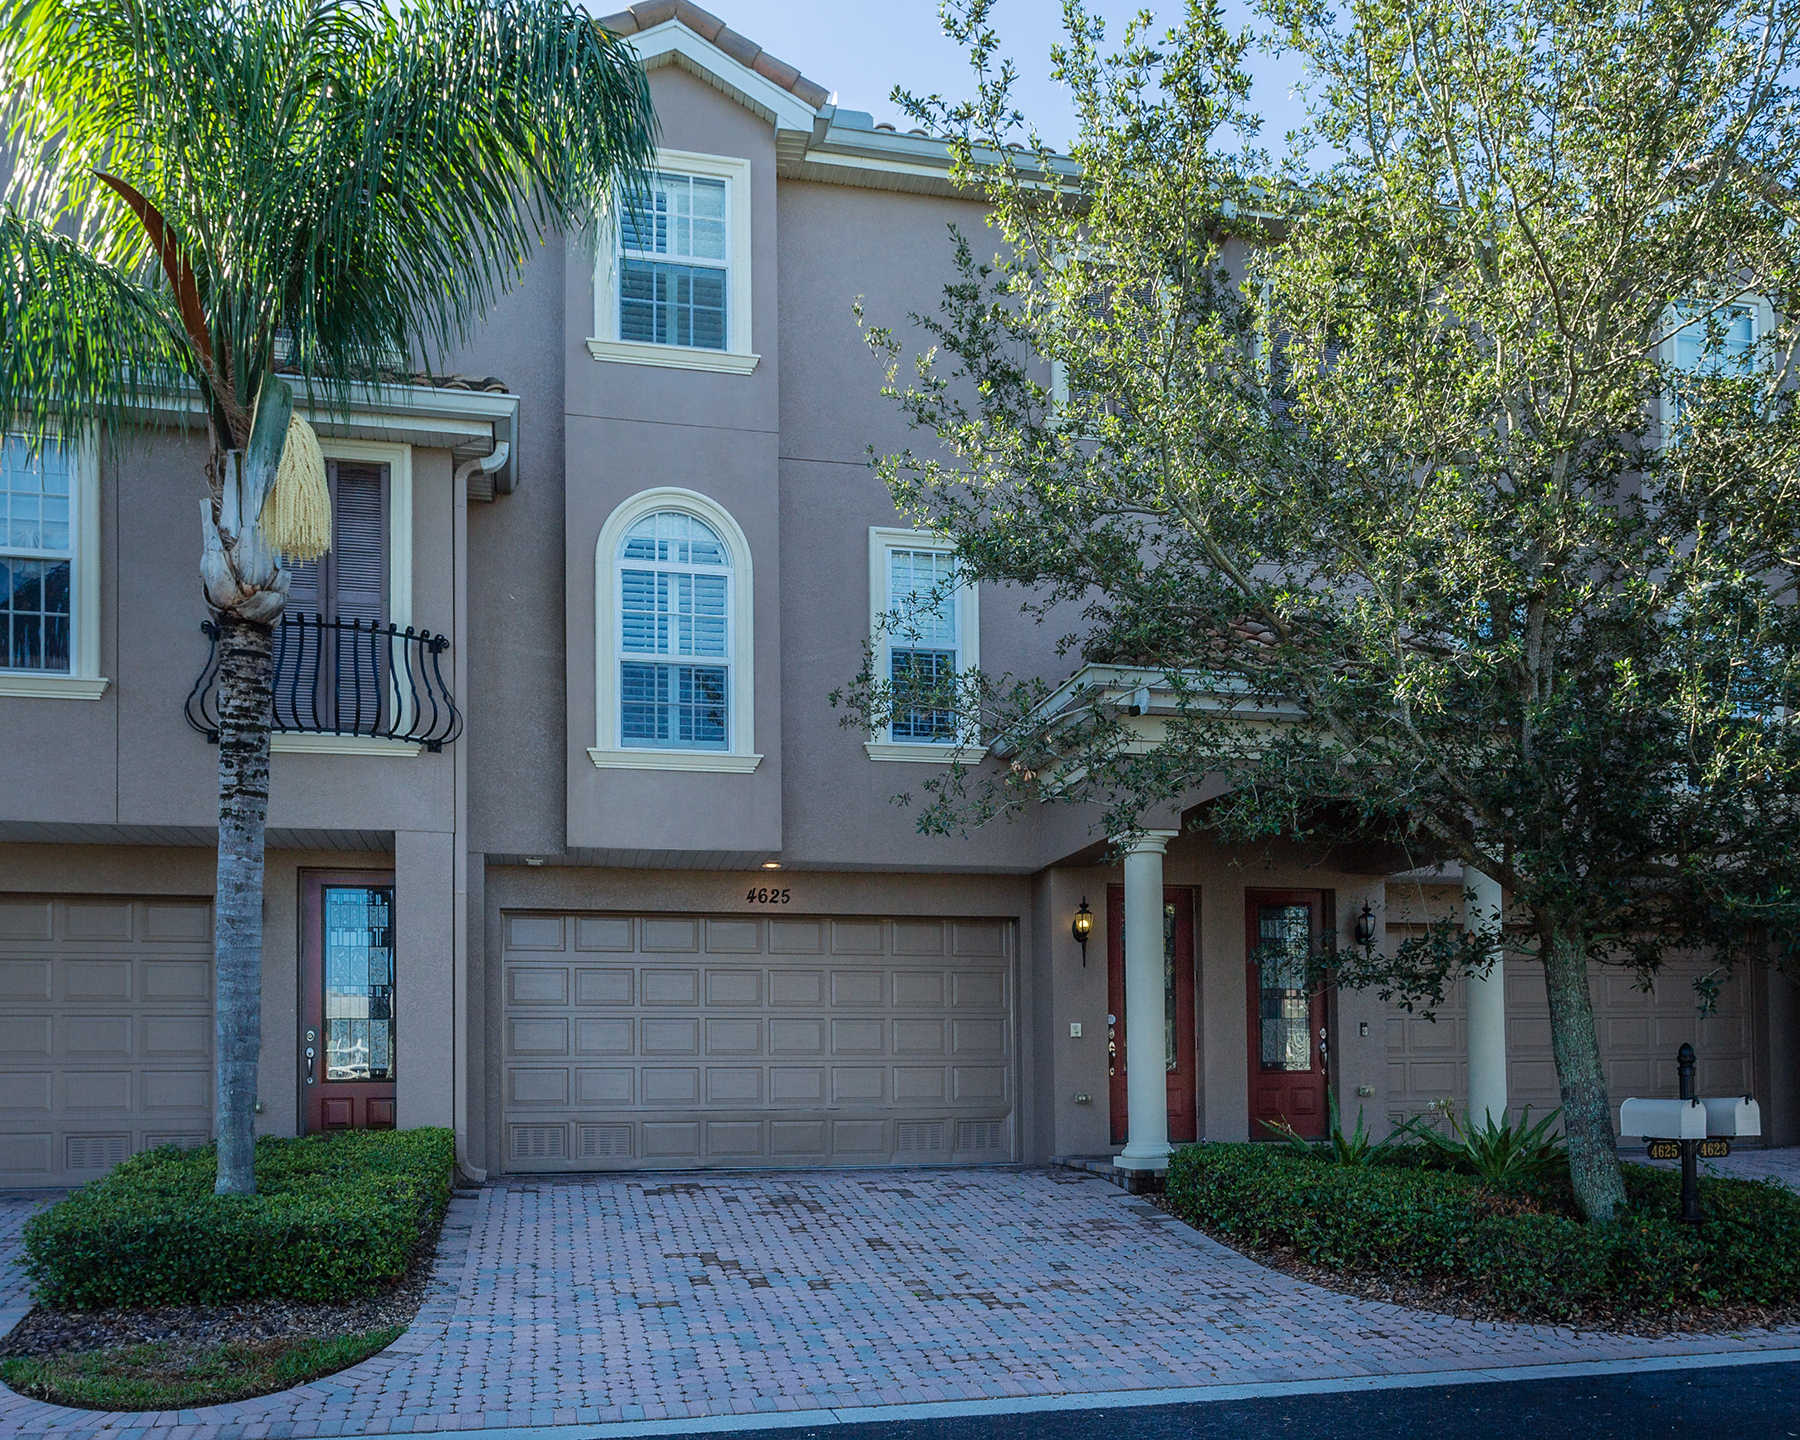 Townhouse for Sale at SHORE ACRES 4625 Overlook Dr NE St. Petersburg, Florida, 33703 United States